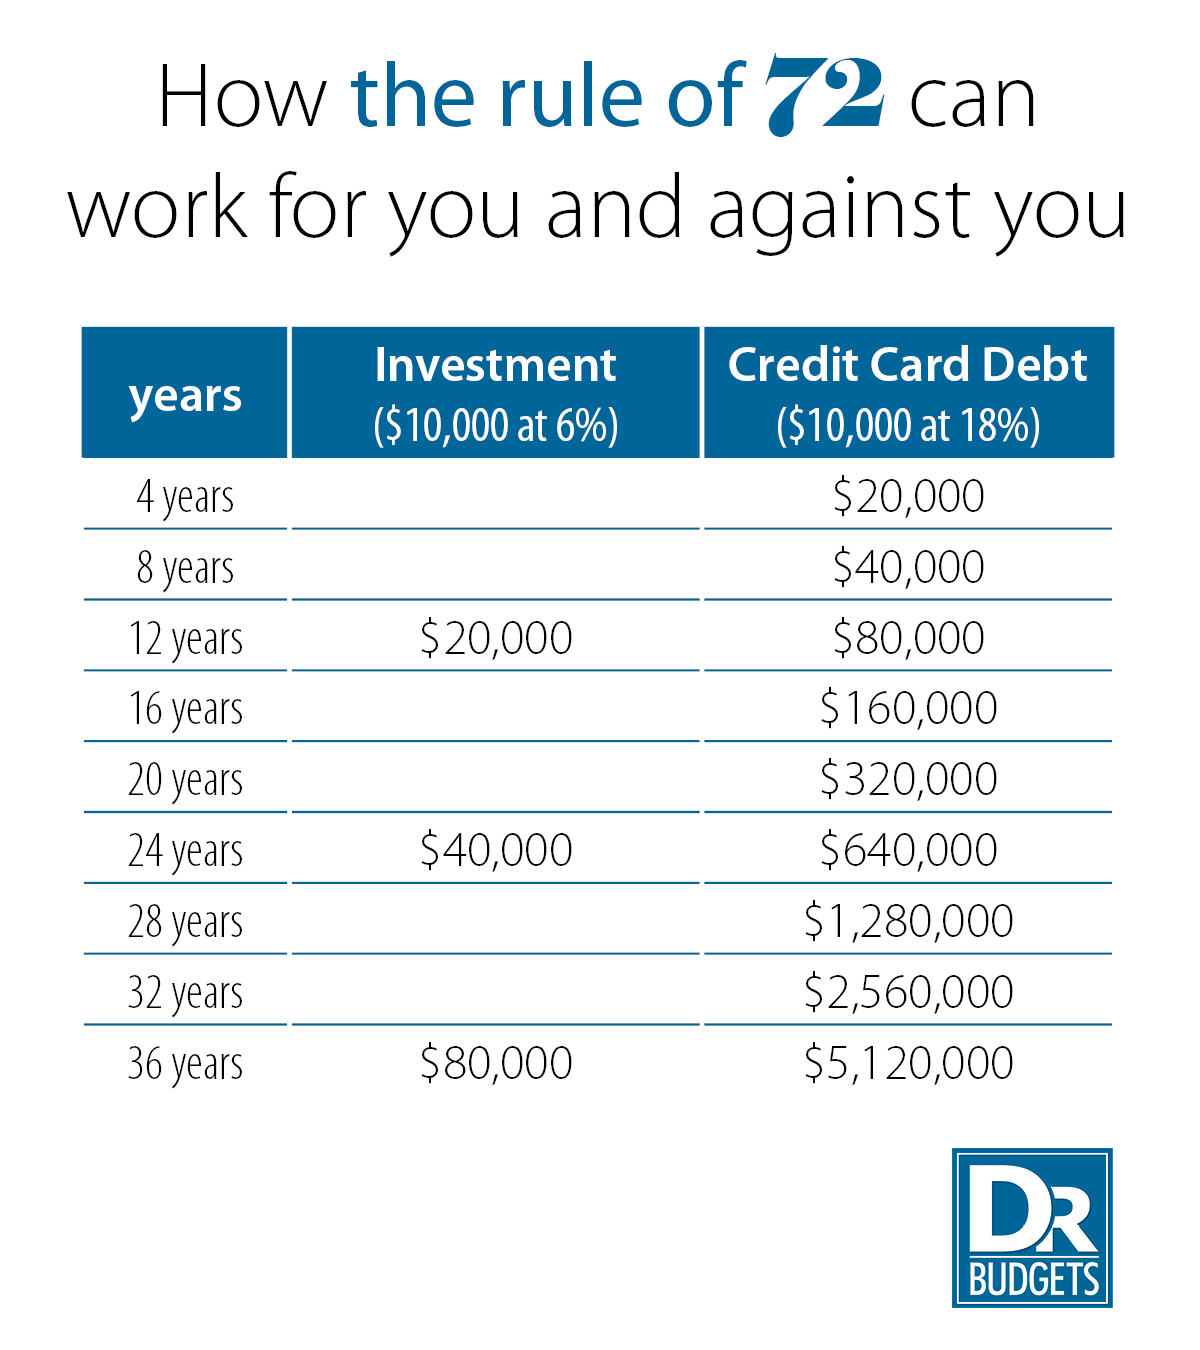 The Rule Of 72 For Debt